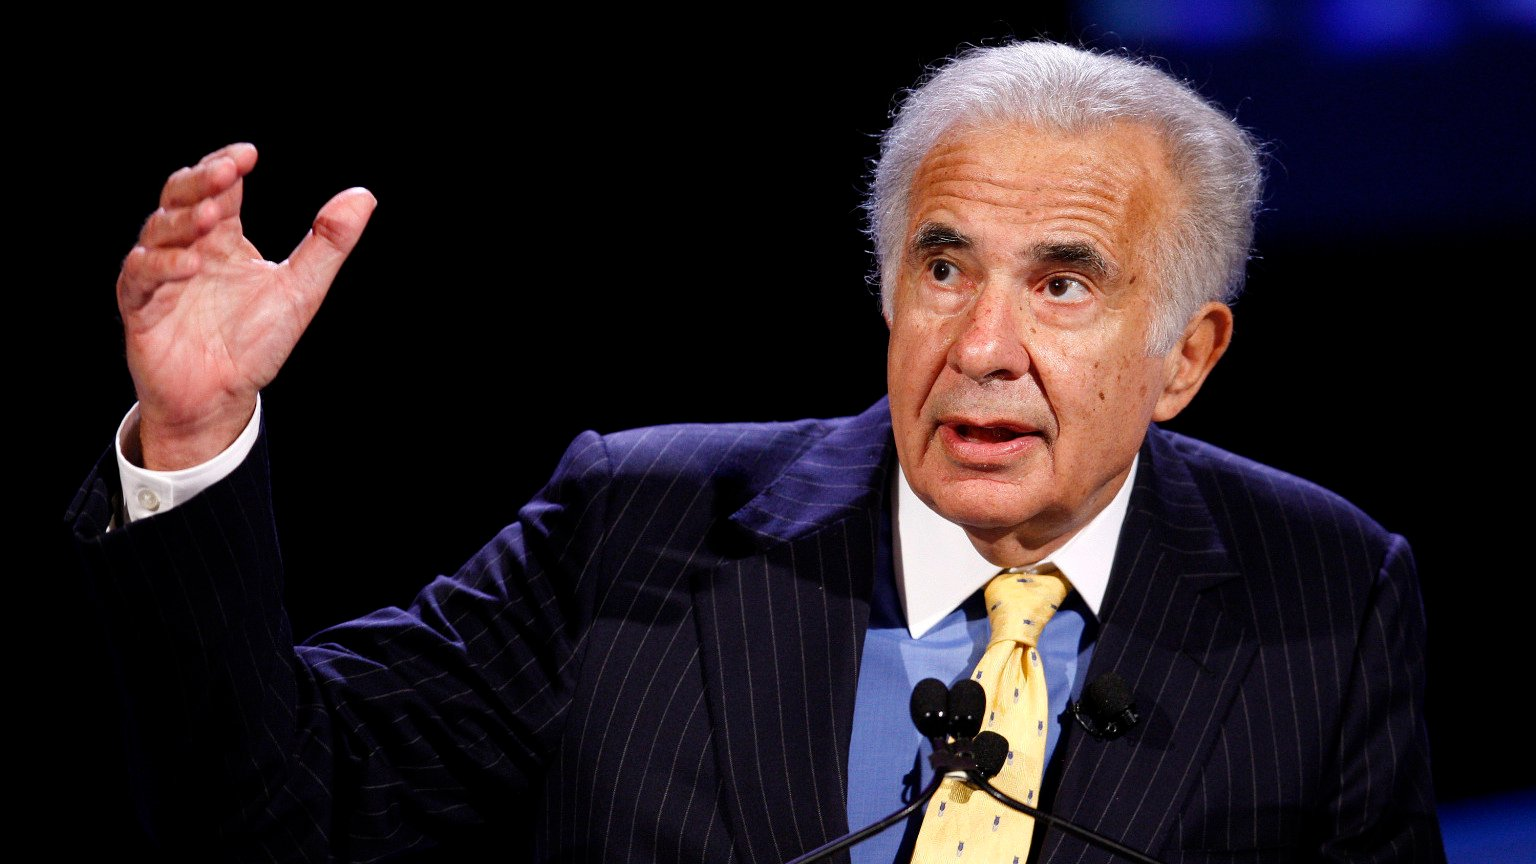 Casino mogul Carl Icahn fights Sweeney